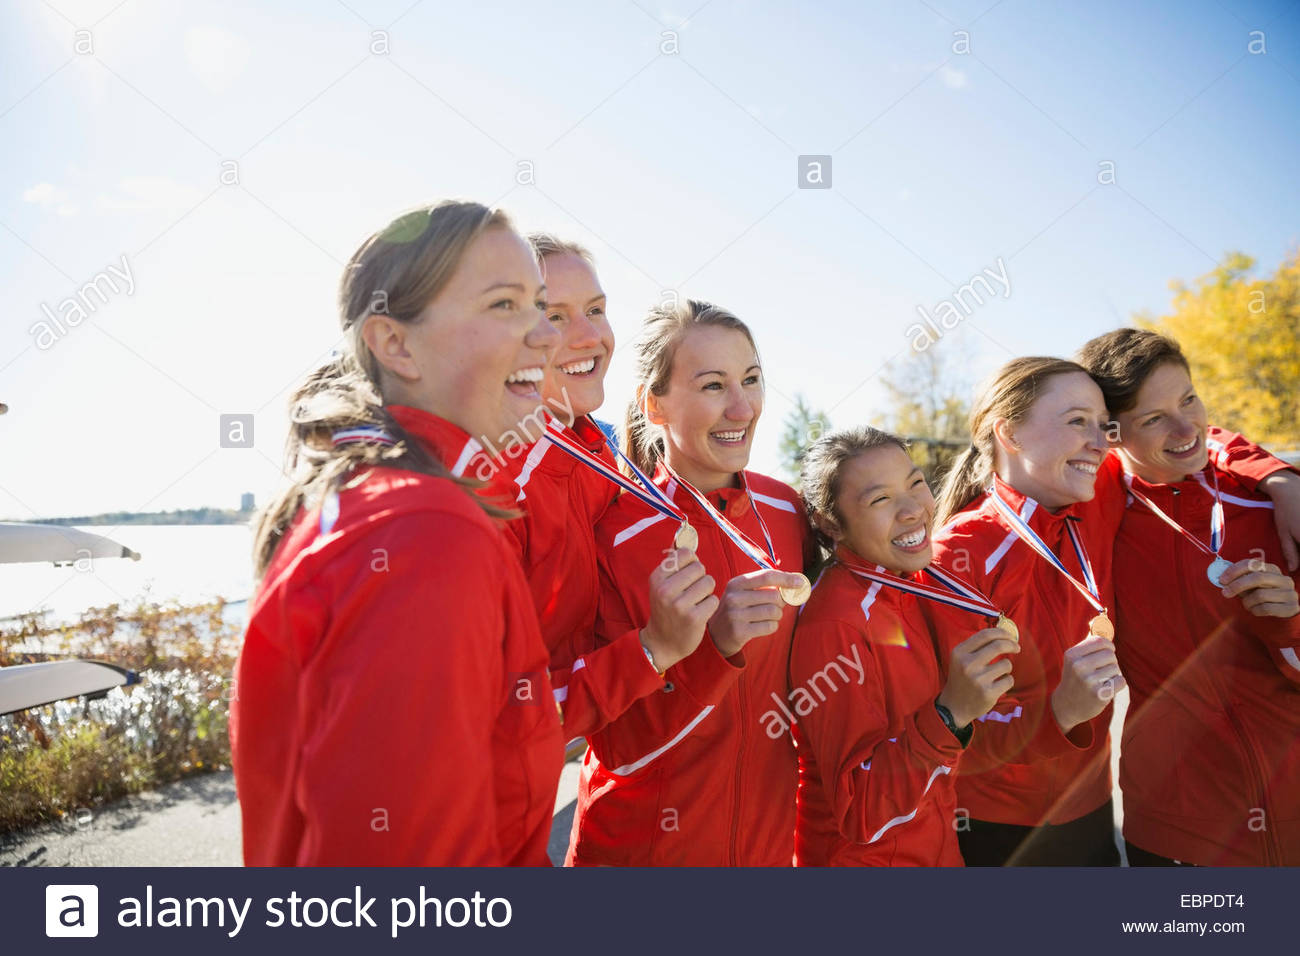 Rowing team with medals celebrating - Stock Image